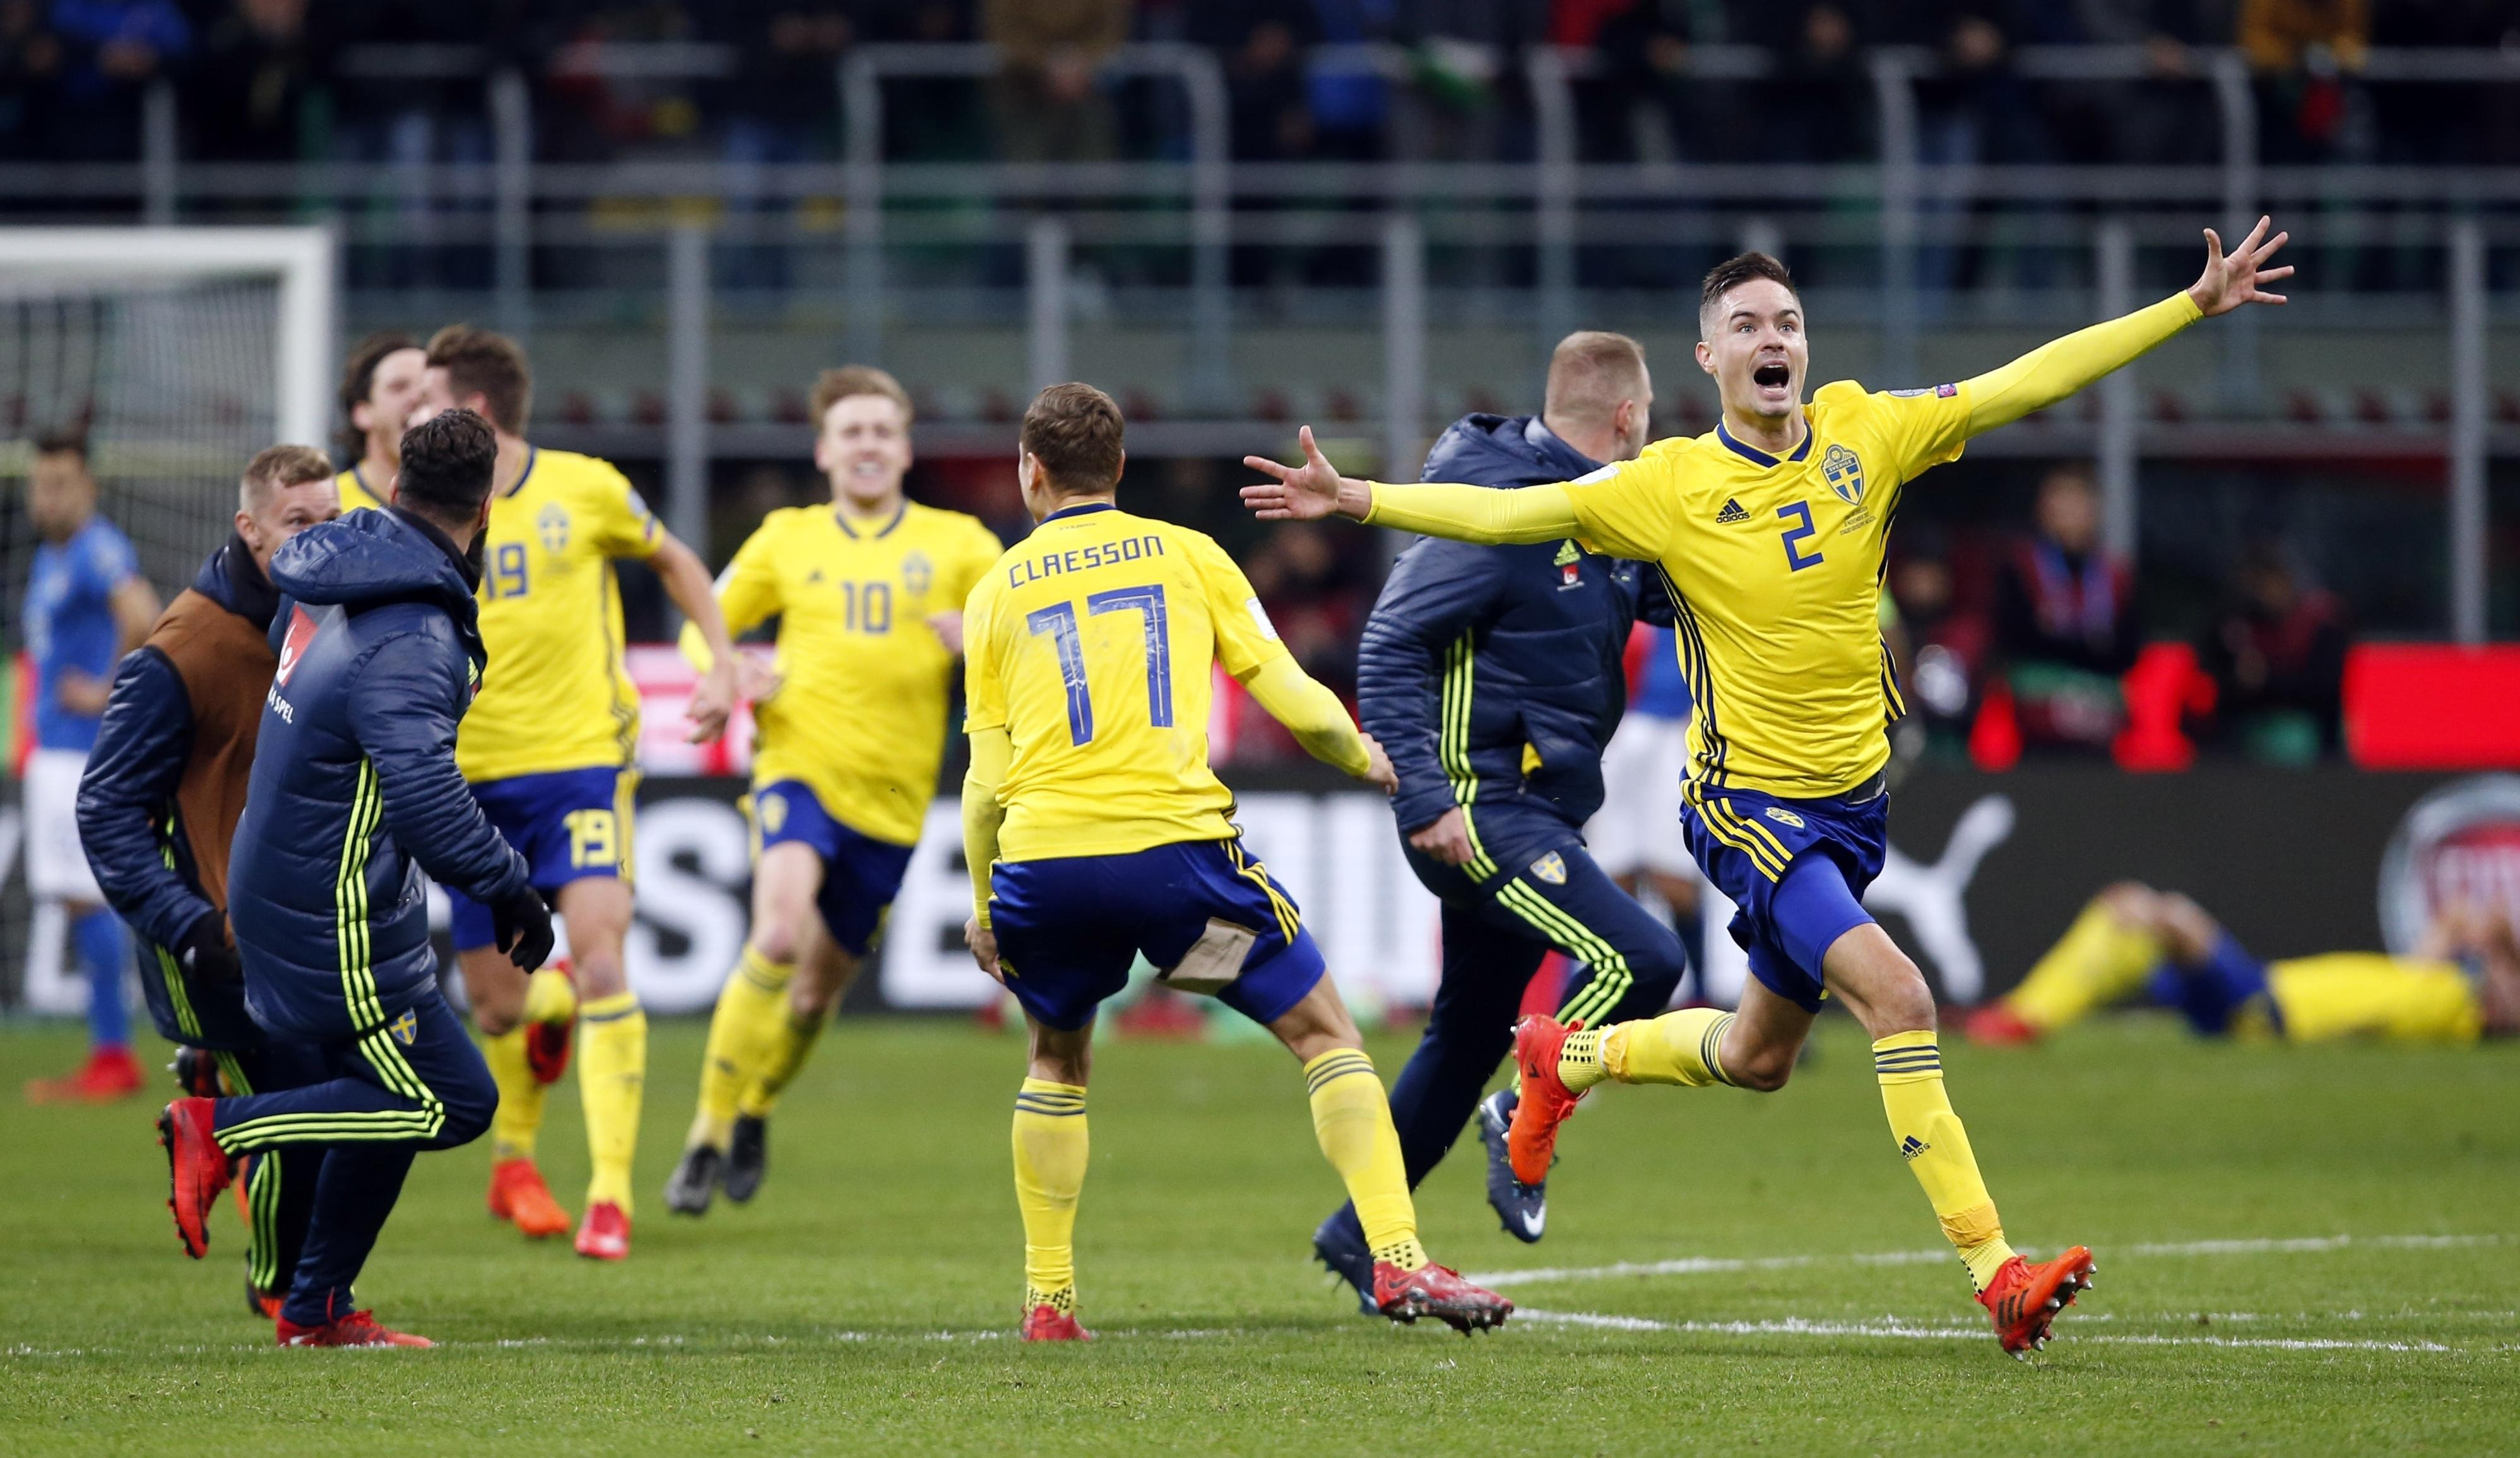 Italian fans will be watching Sweden with intrigue and envy